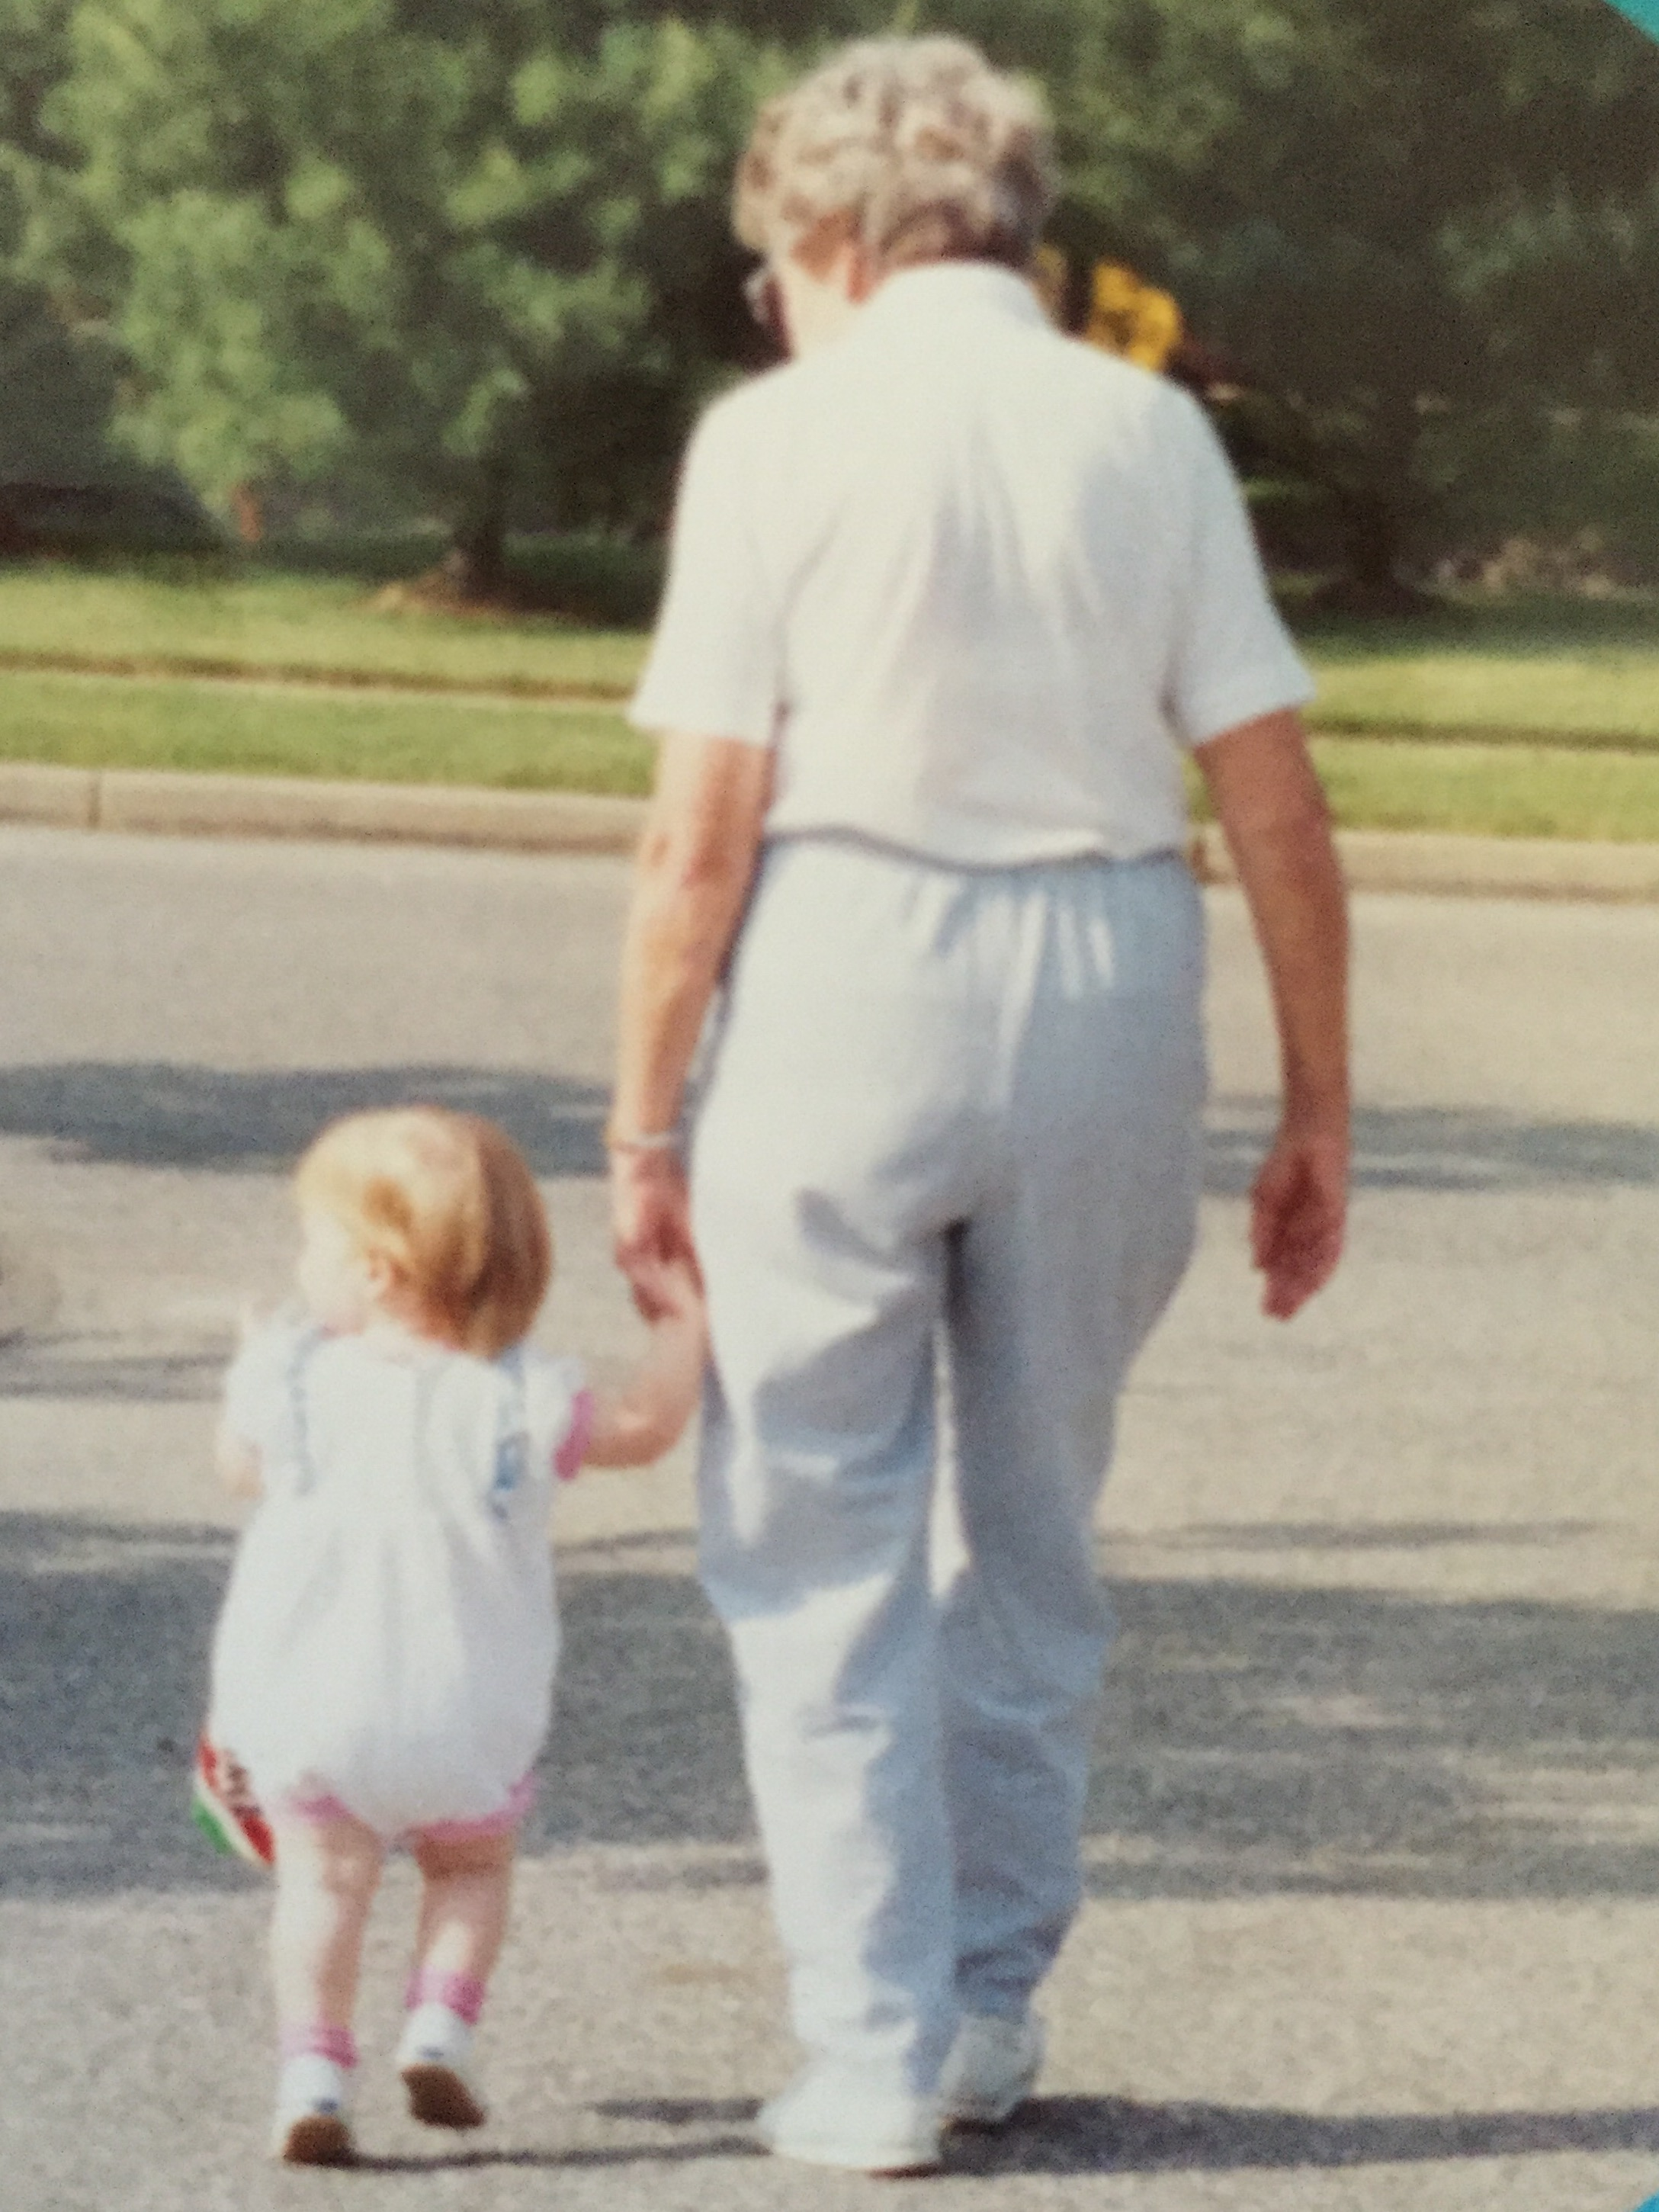 megan as a baby, walking with her nana